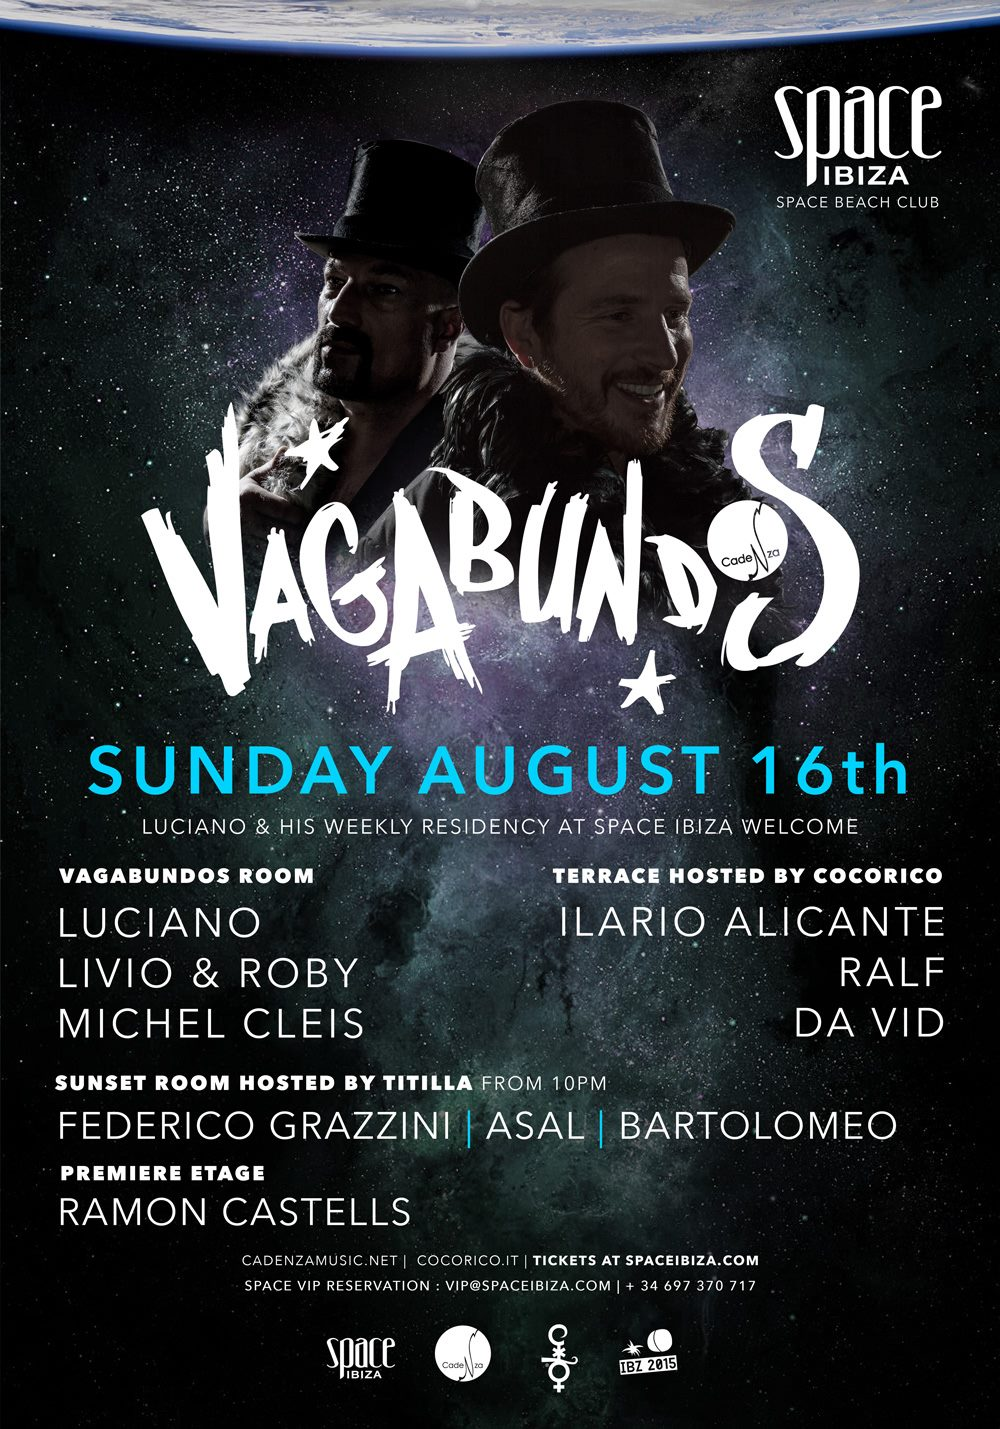 download → Luciano - Vagabundos (week 11), Space, Ibiza - 720p HD - 16-Aug-2015